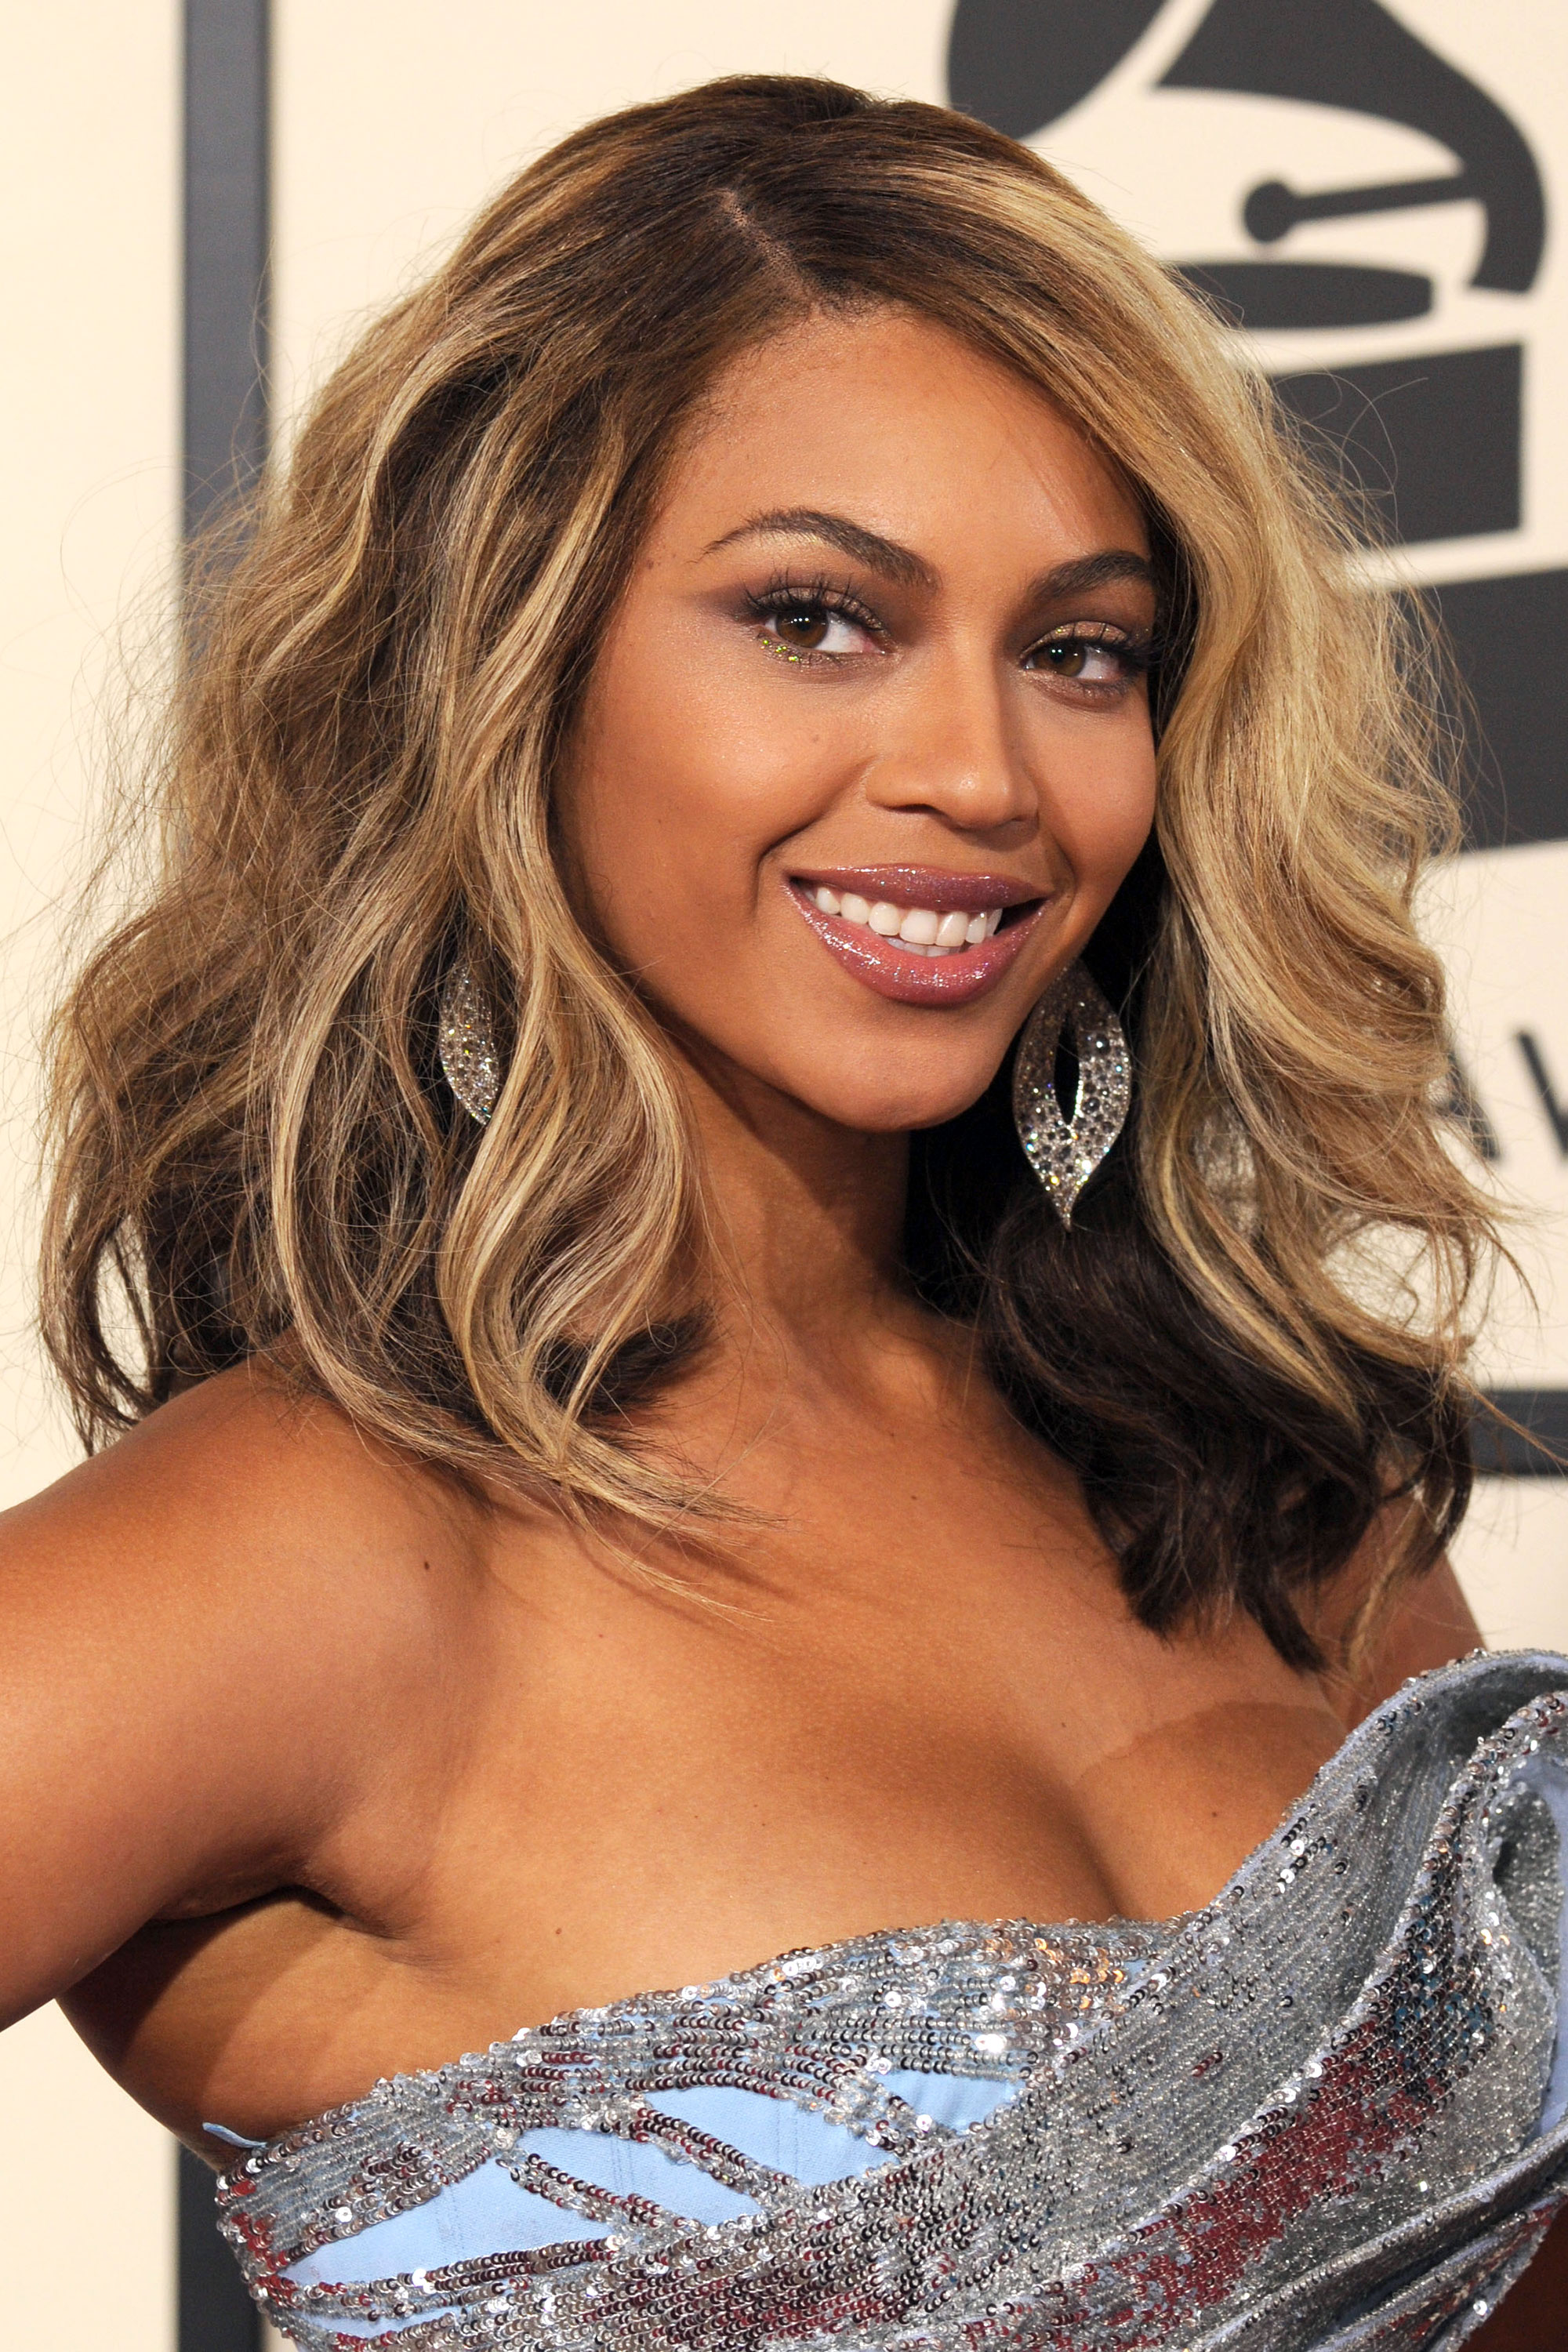 Admirable 40 Beyonce Hairstyles Beyonce39S Real Hair Long Hair And Short Short Hairstyles For Black Women Fulllsitofus